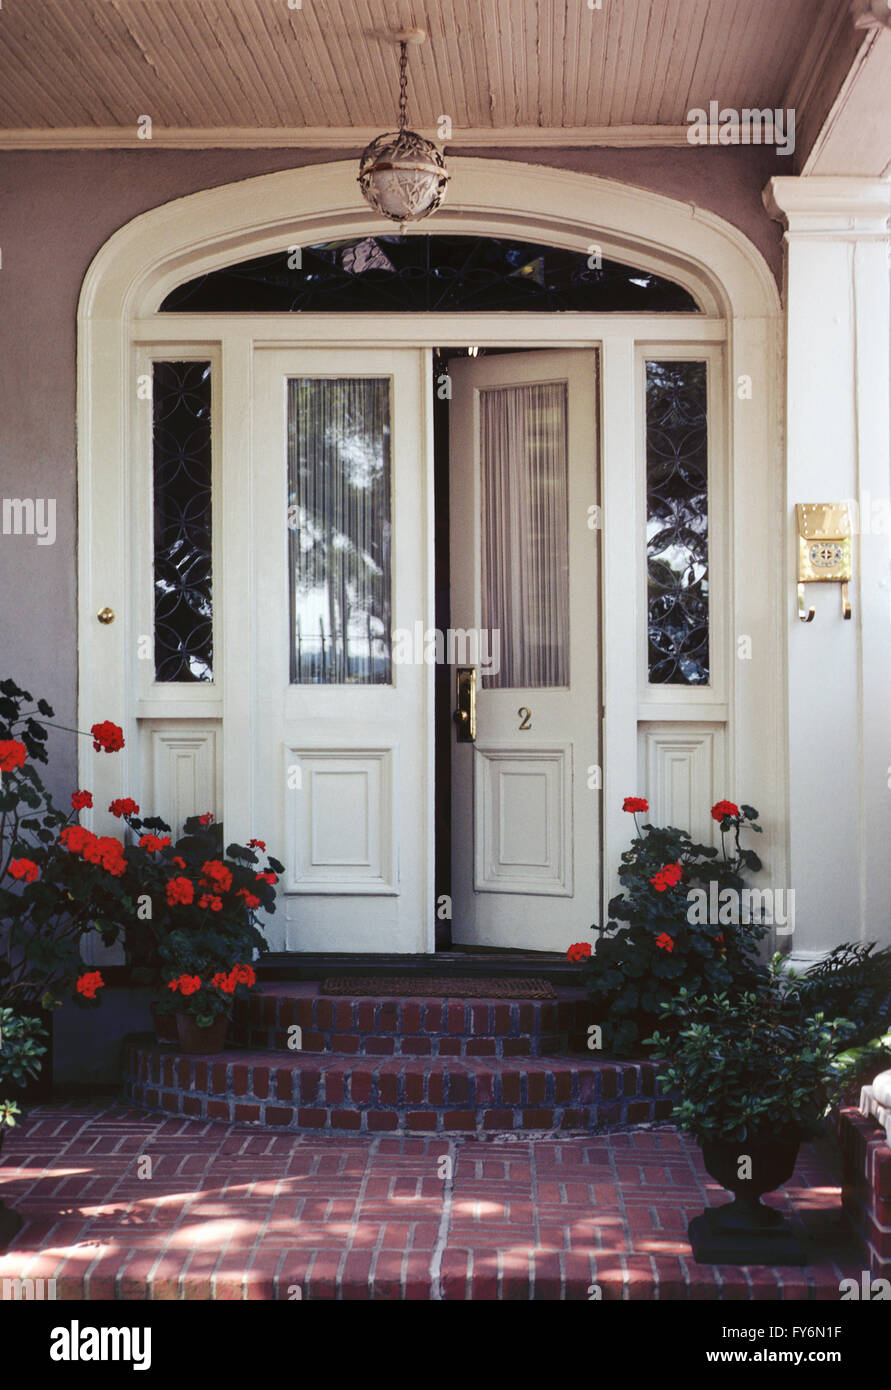 Double wooden doors with etched glass windows & brass hardware ...